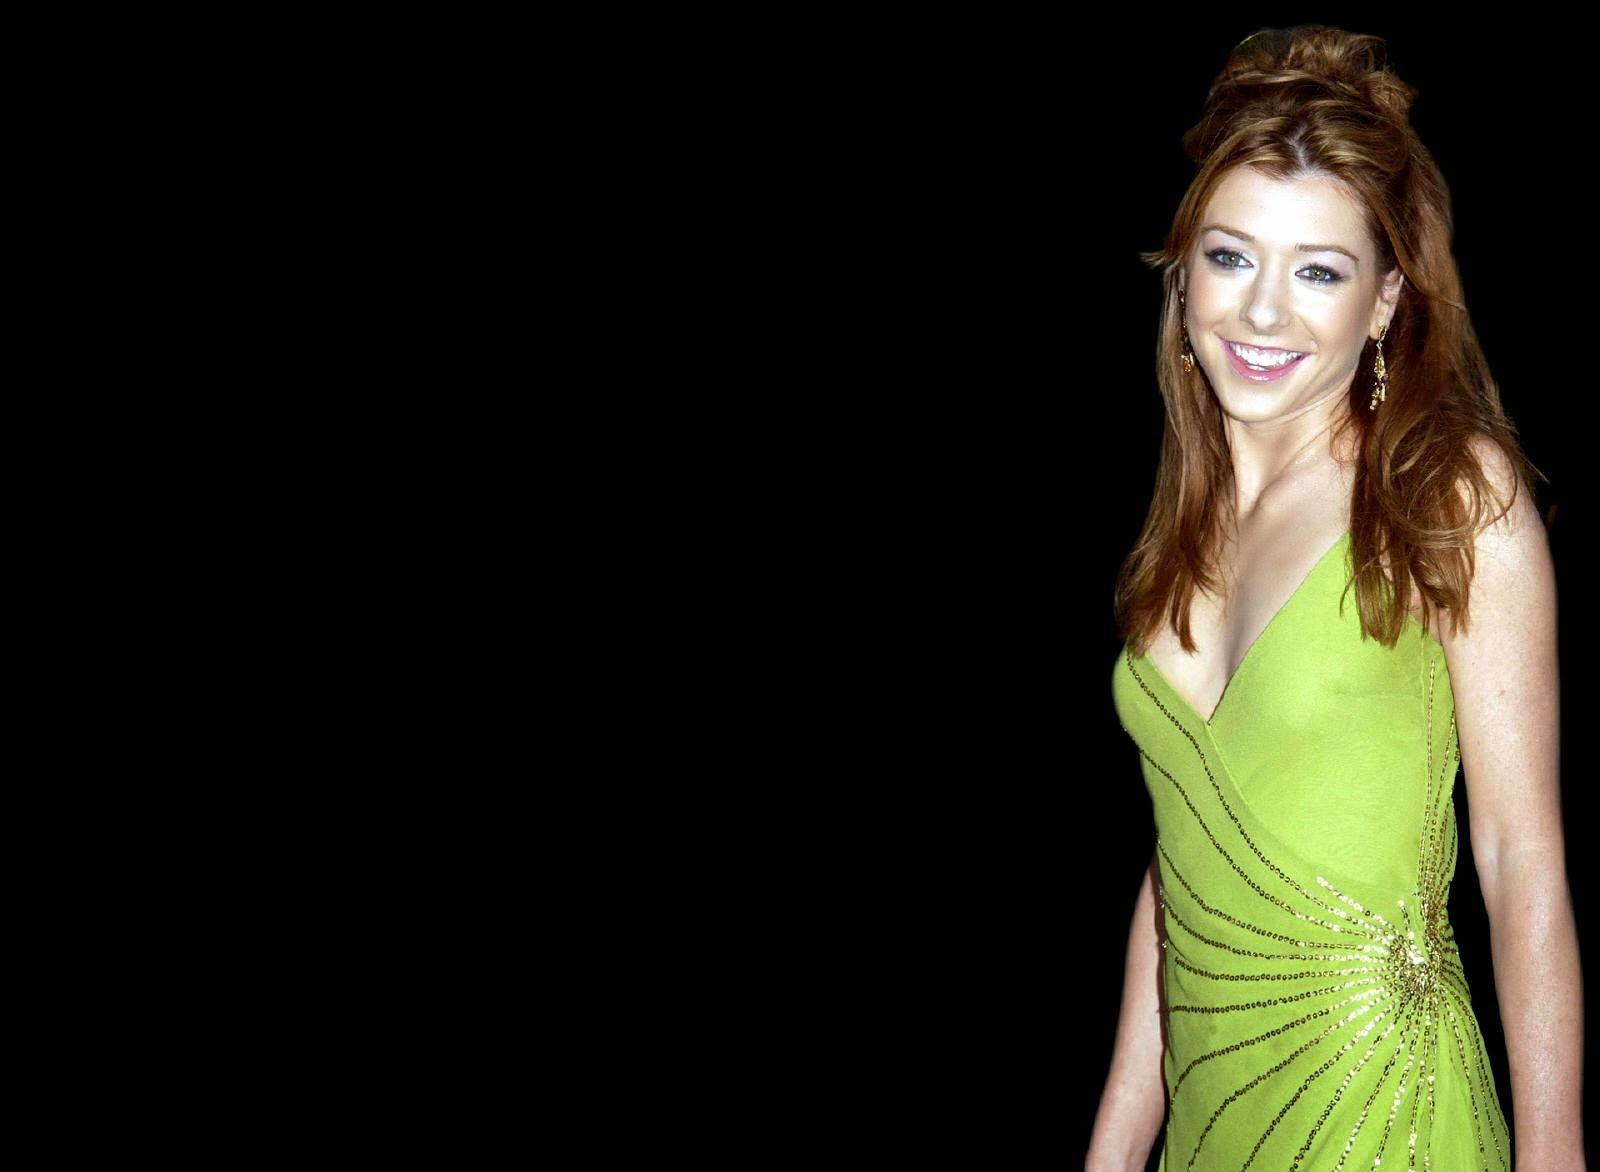 Alyson Hannigan Wallpapers Free Download